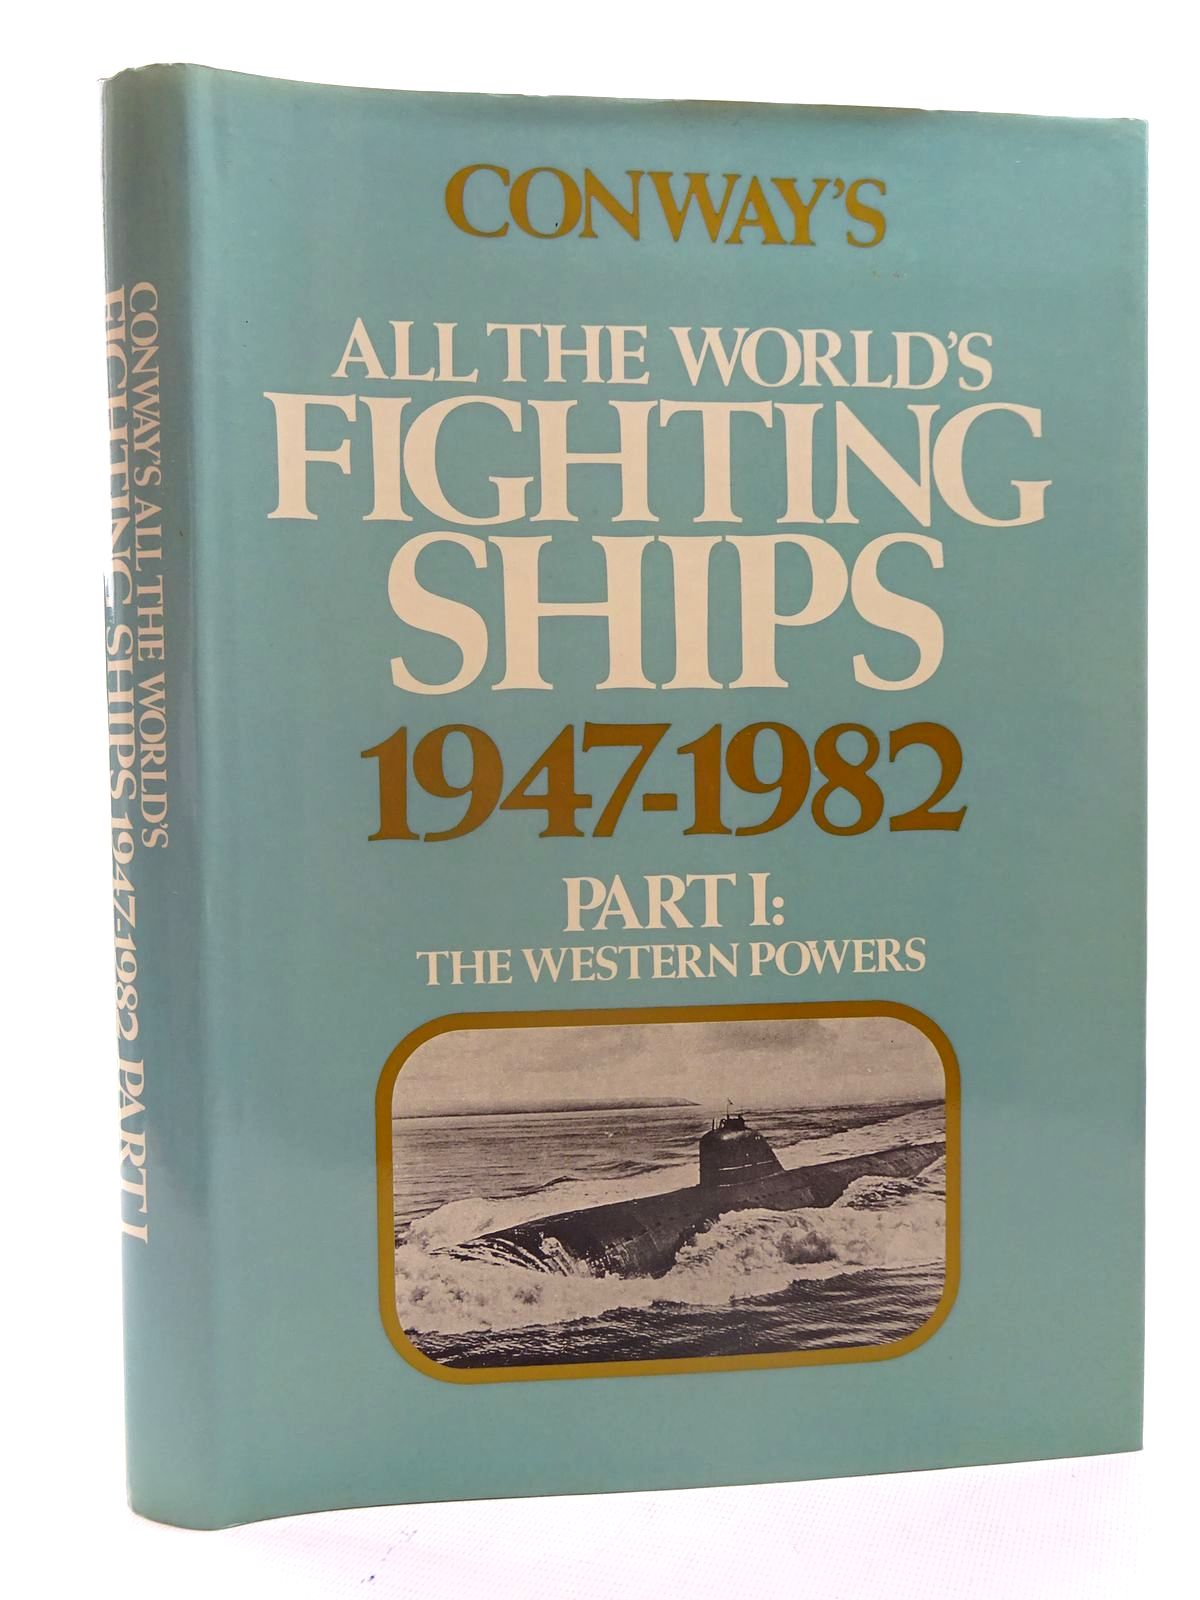 Photo of CONWAY'S ALL THE WORLD'S FIGHTING SHIPS 1947-1982 PART I- Stock Number: 2125468